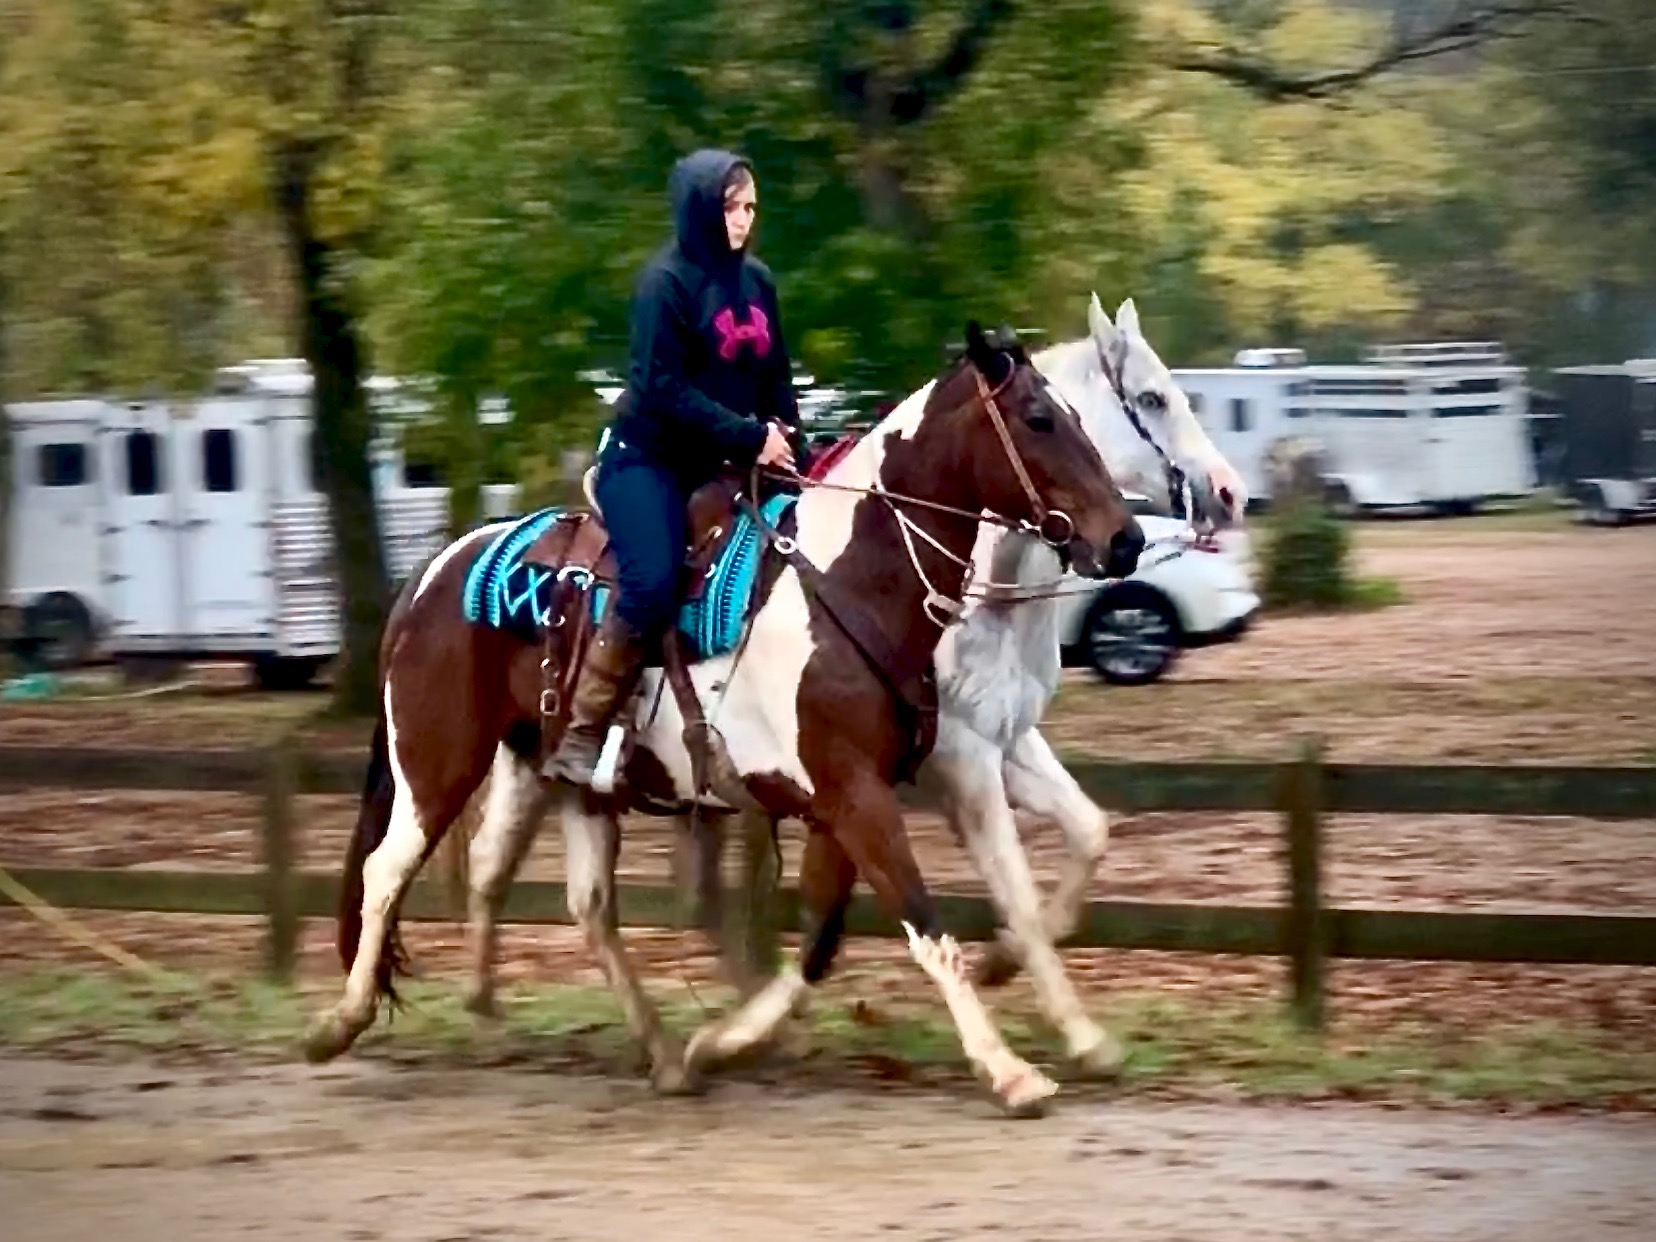 Tanya_and_Sheriff_Trotting_While_Ponying